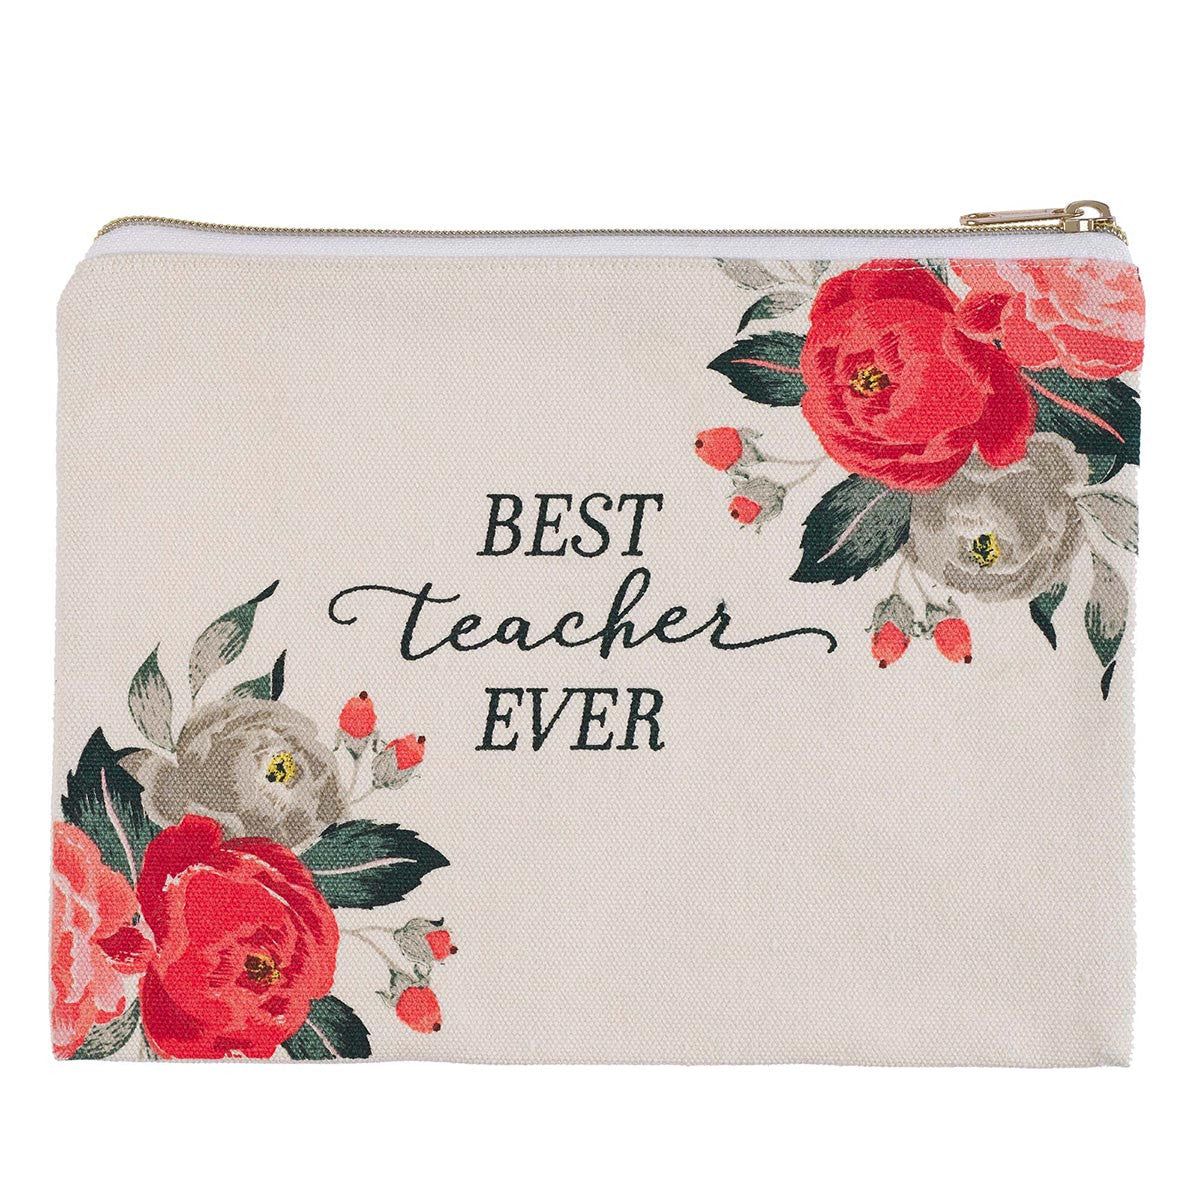 Best Teacher Ever Canvas Pouch (PCA008)